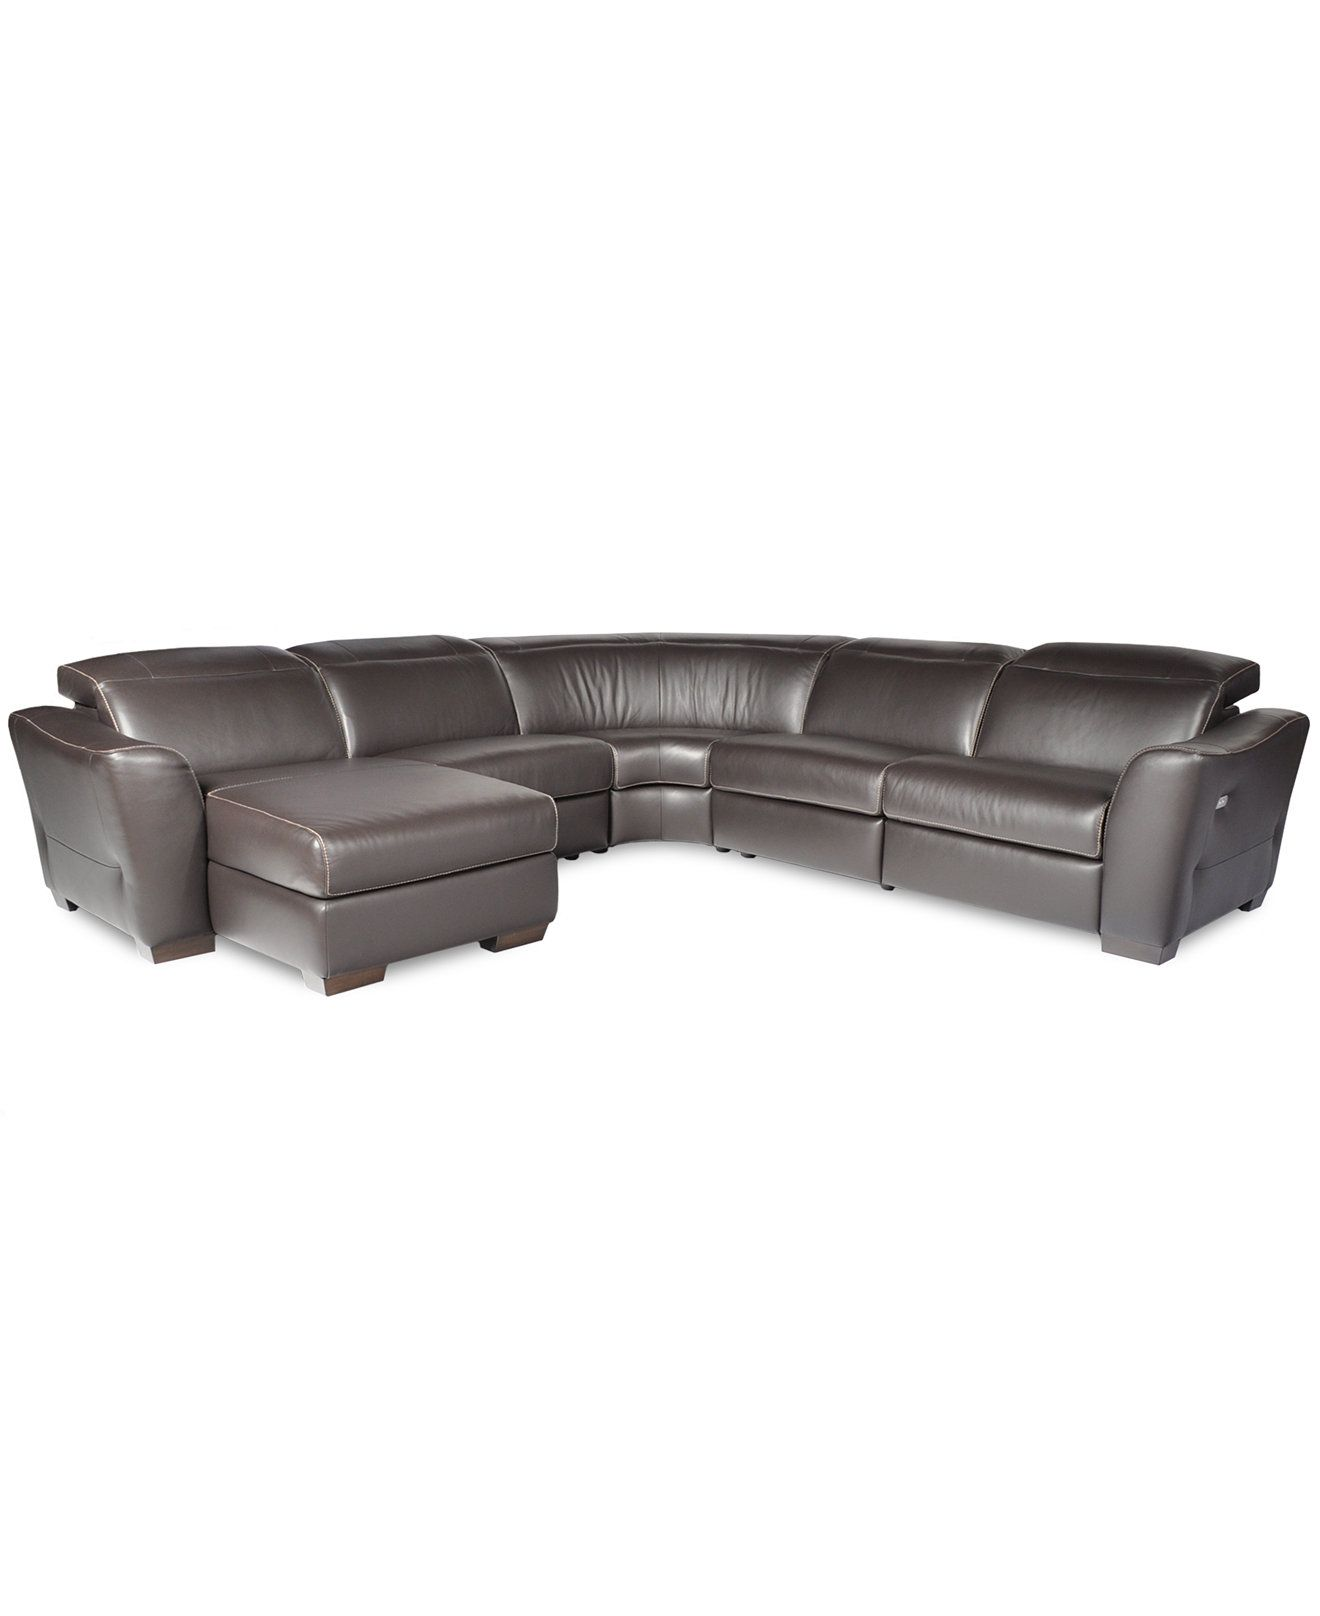 Alessandro 5 pc Leather Sectional Sofa with Chaise with 1 Power